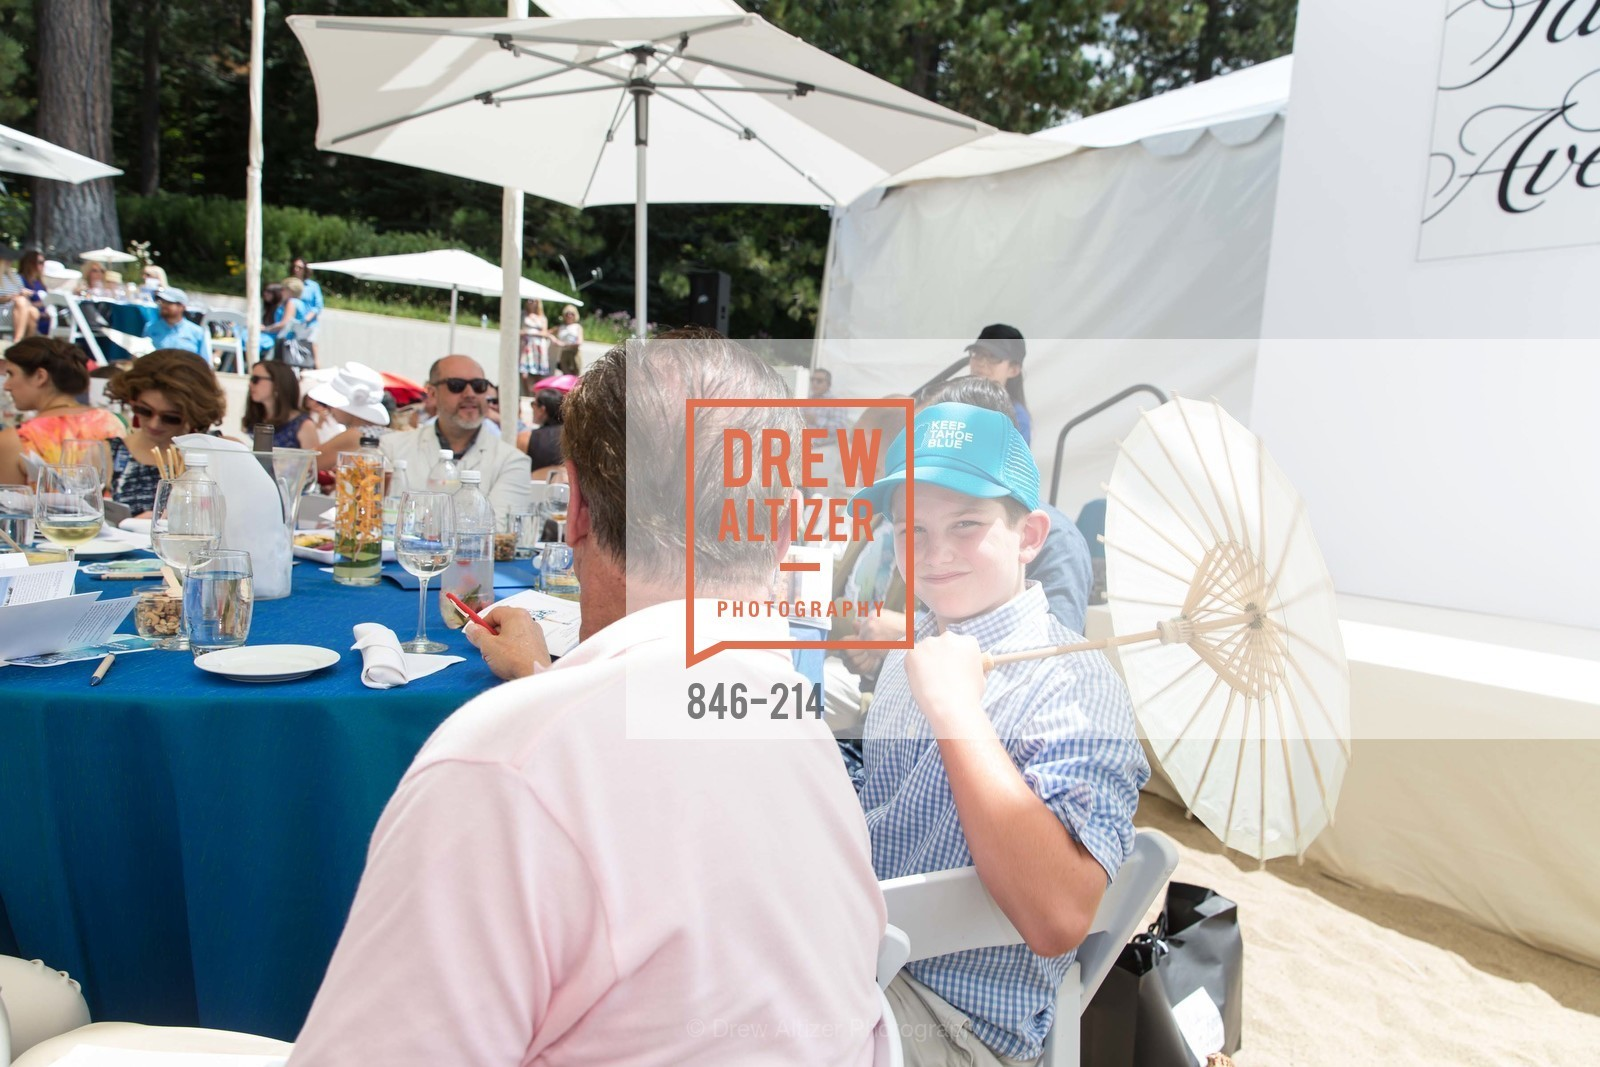 Philip Bolen, Saks Fifth Avenue and The League to Save Lake Tahoe Present Fashion on the Lake, Private Residence, August 1st, 2015,Drew Altizer, Drew Altizer Photography, full-service agency, private events, San Francisco photographer, photographer california